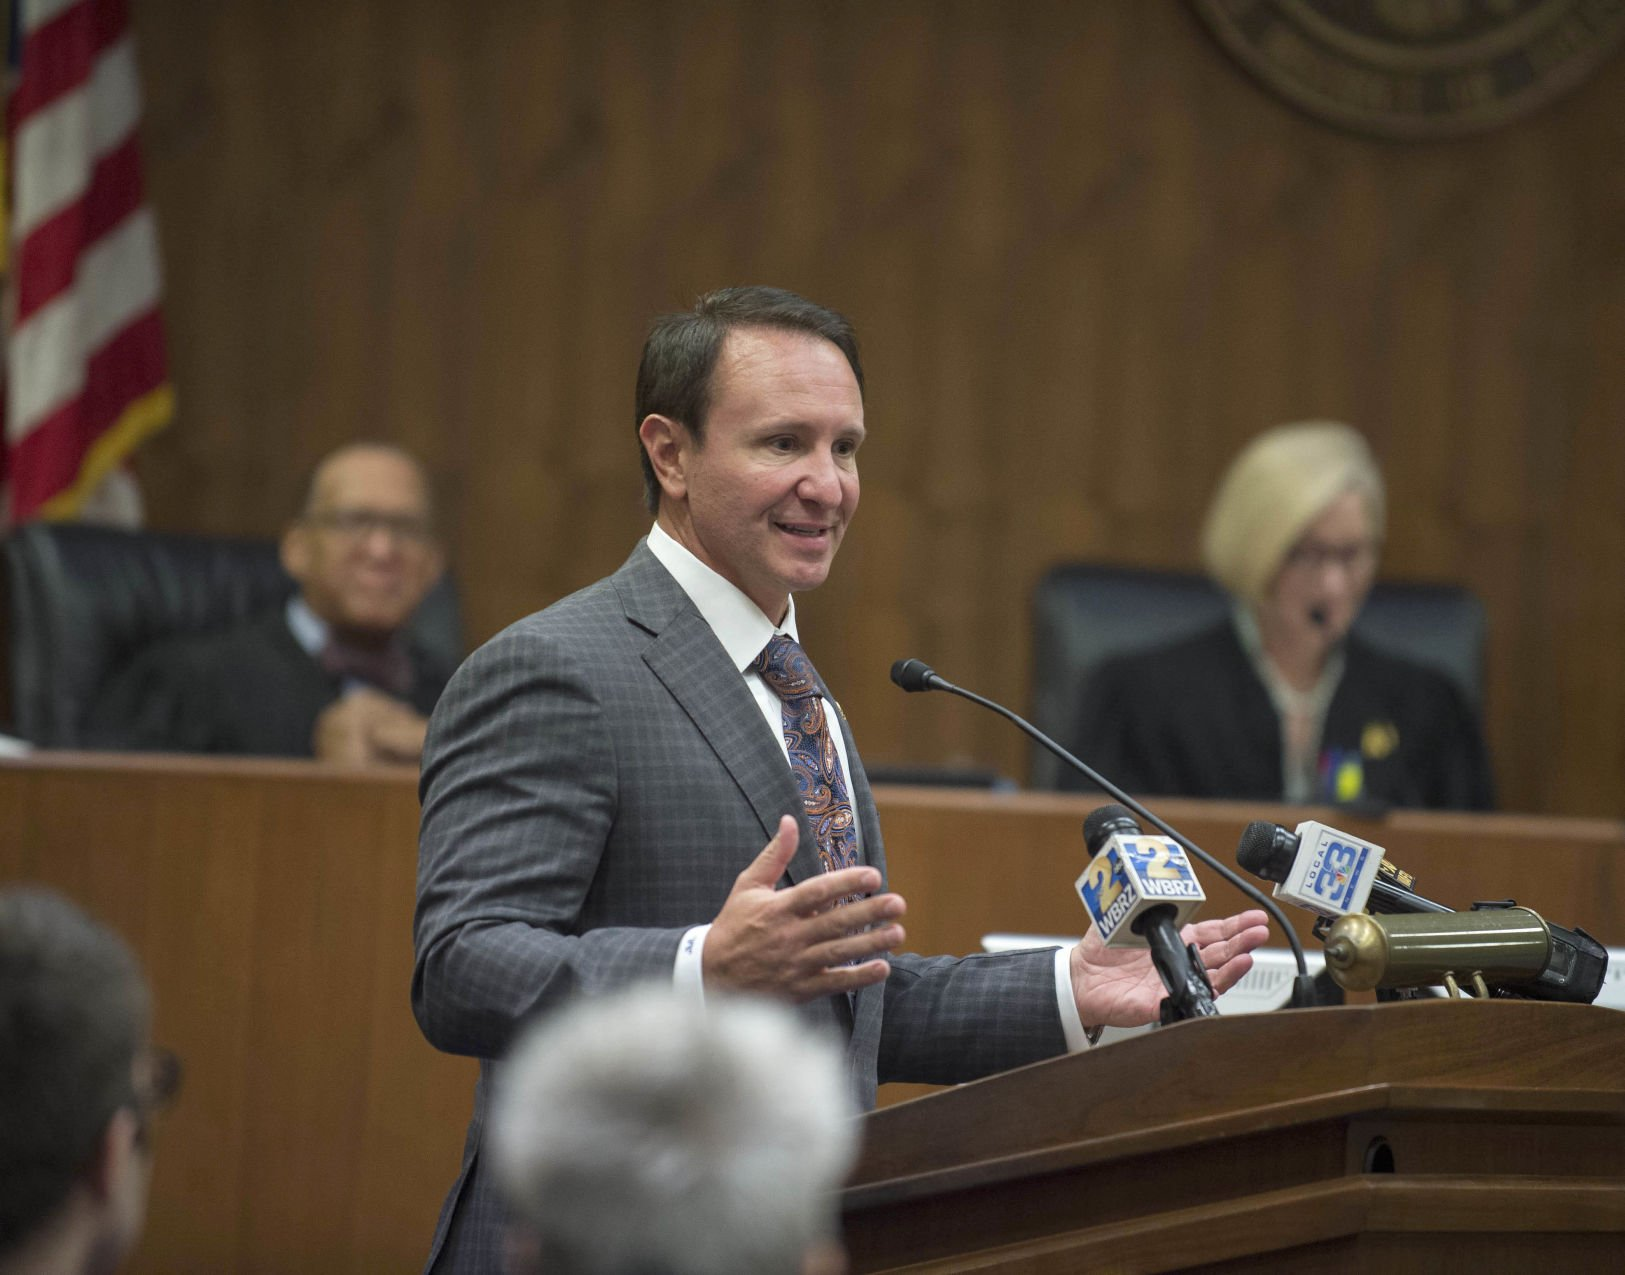 Jeff Landry for in/out gov race collection